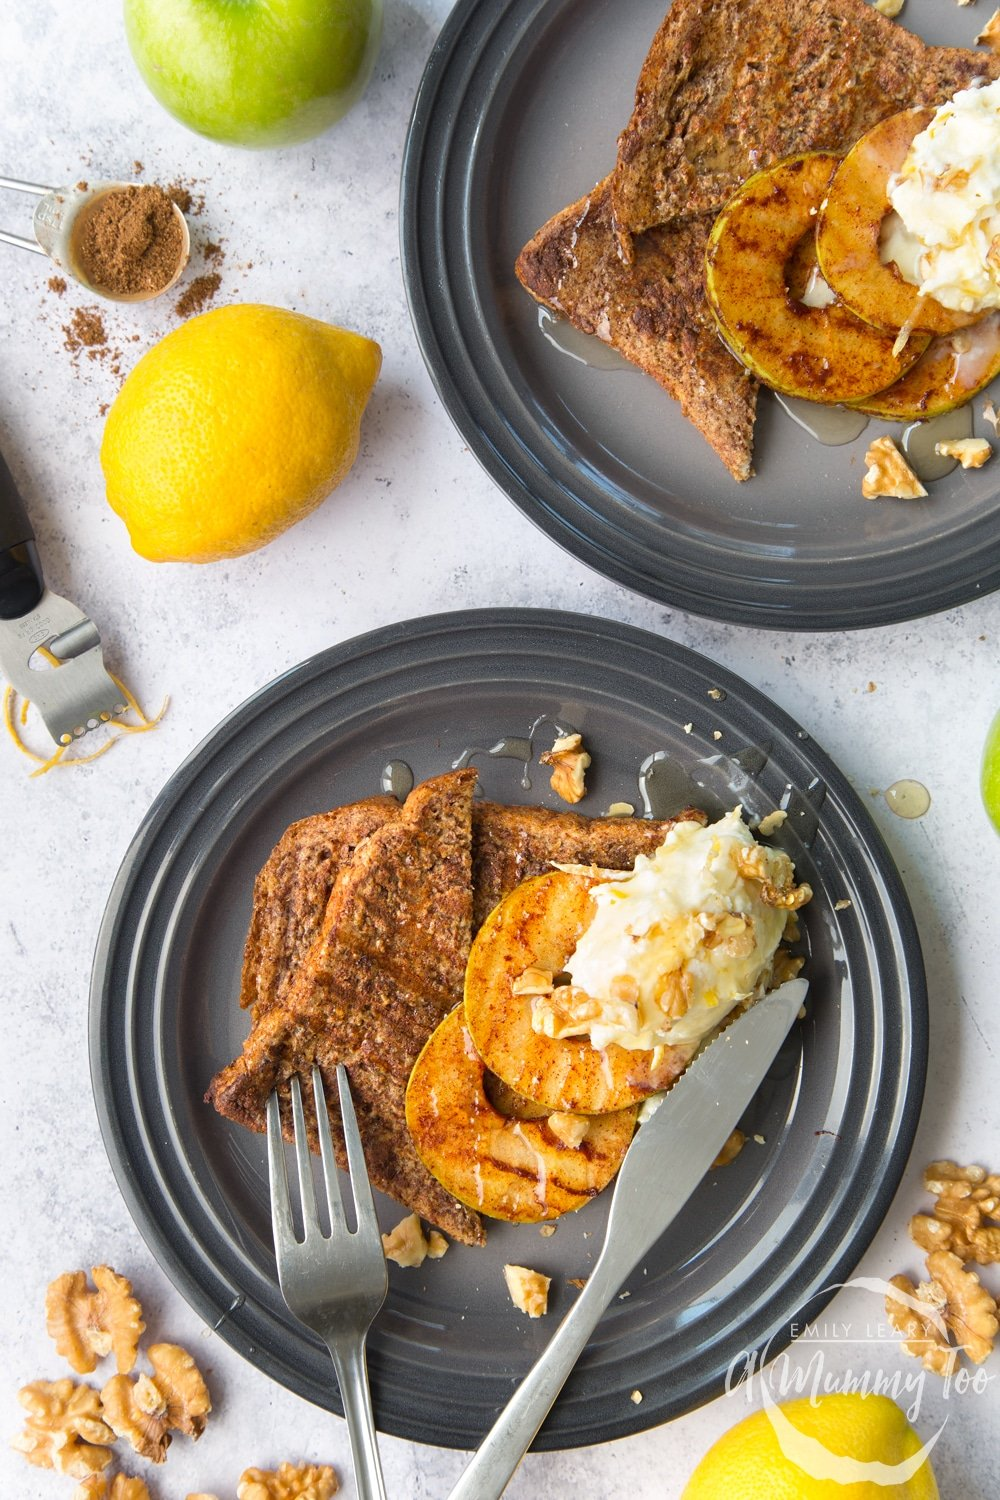 Cinnamon French toast with griddled apple slices and lemon mascarpone